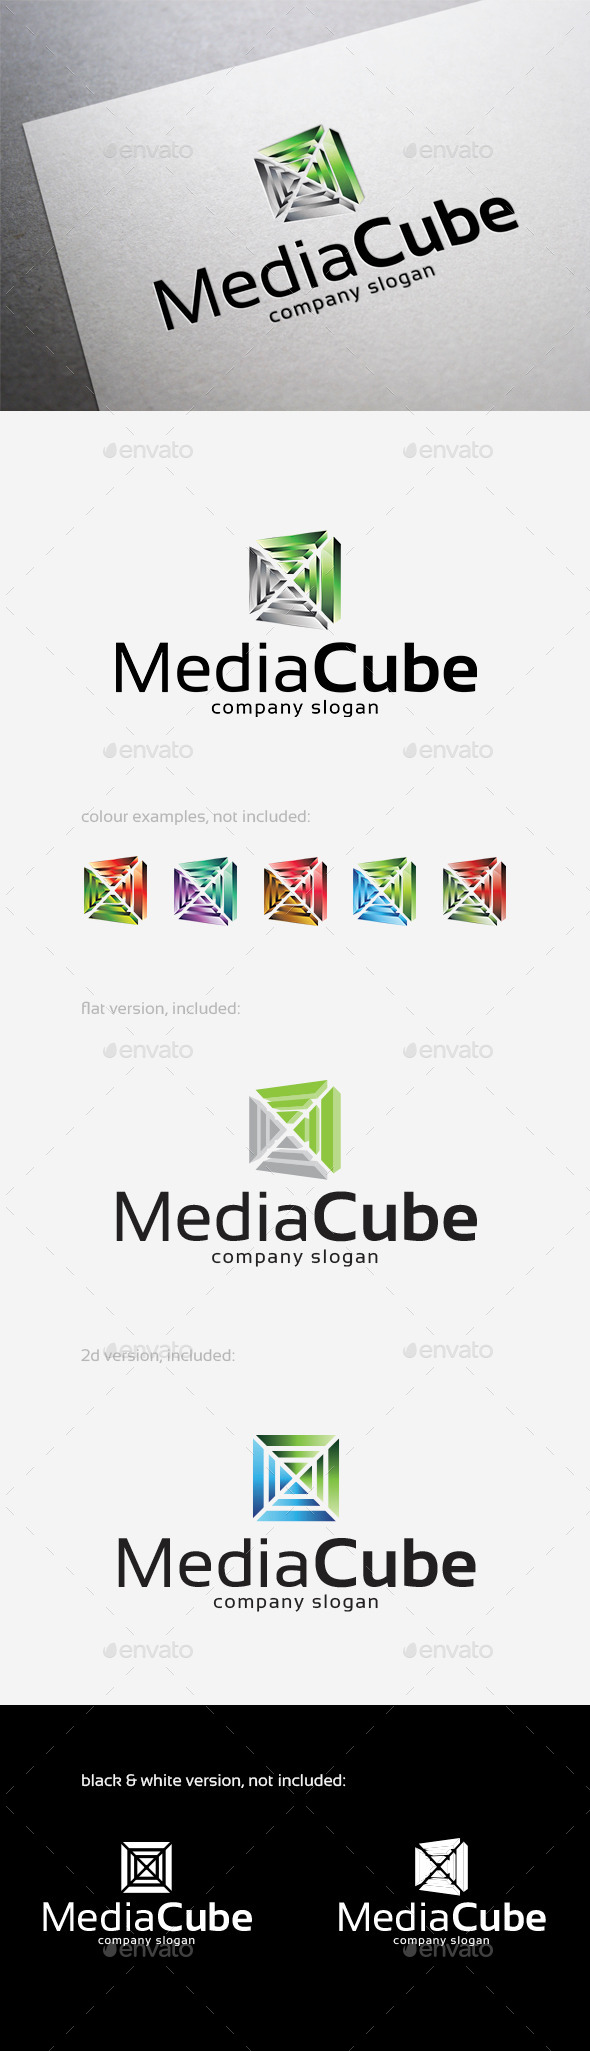 GraphicRiver Media Cube Logo 10411159